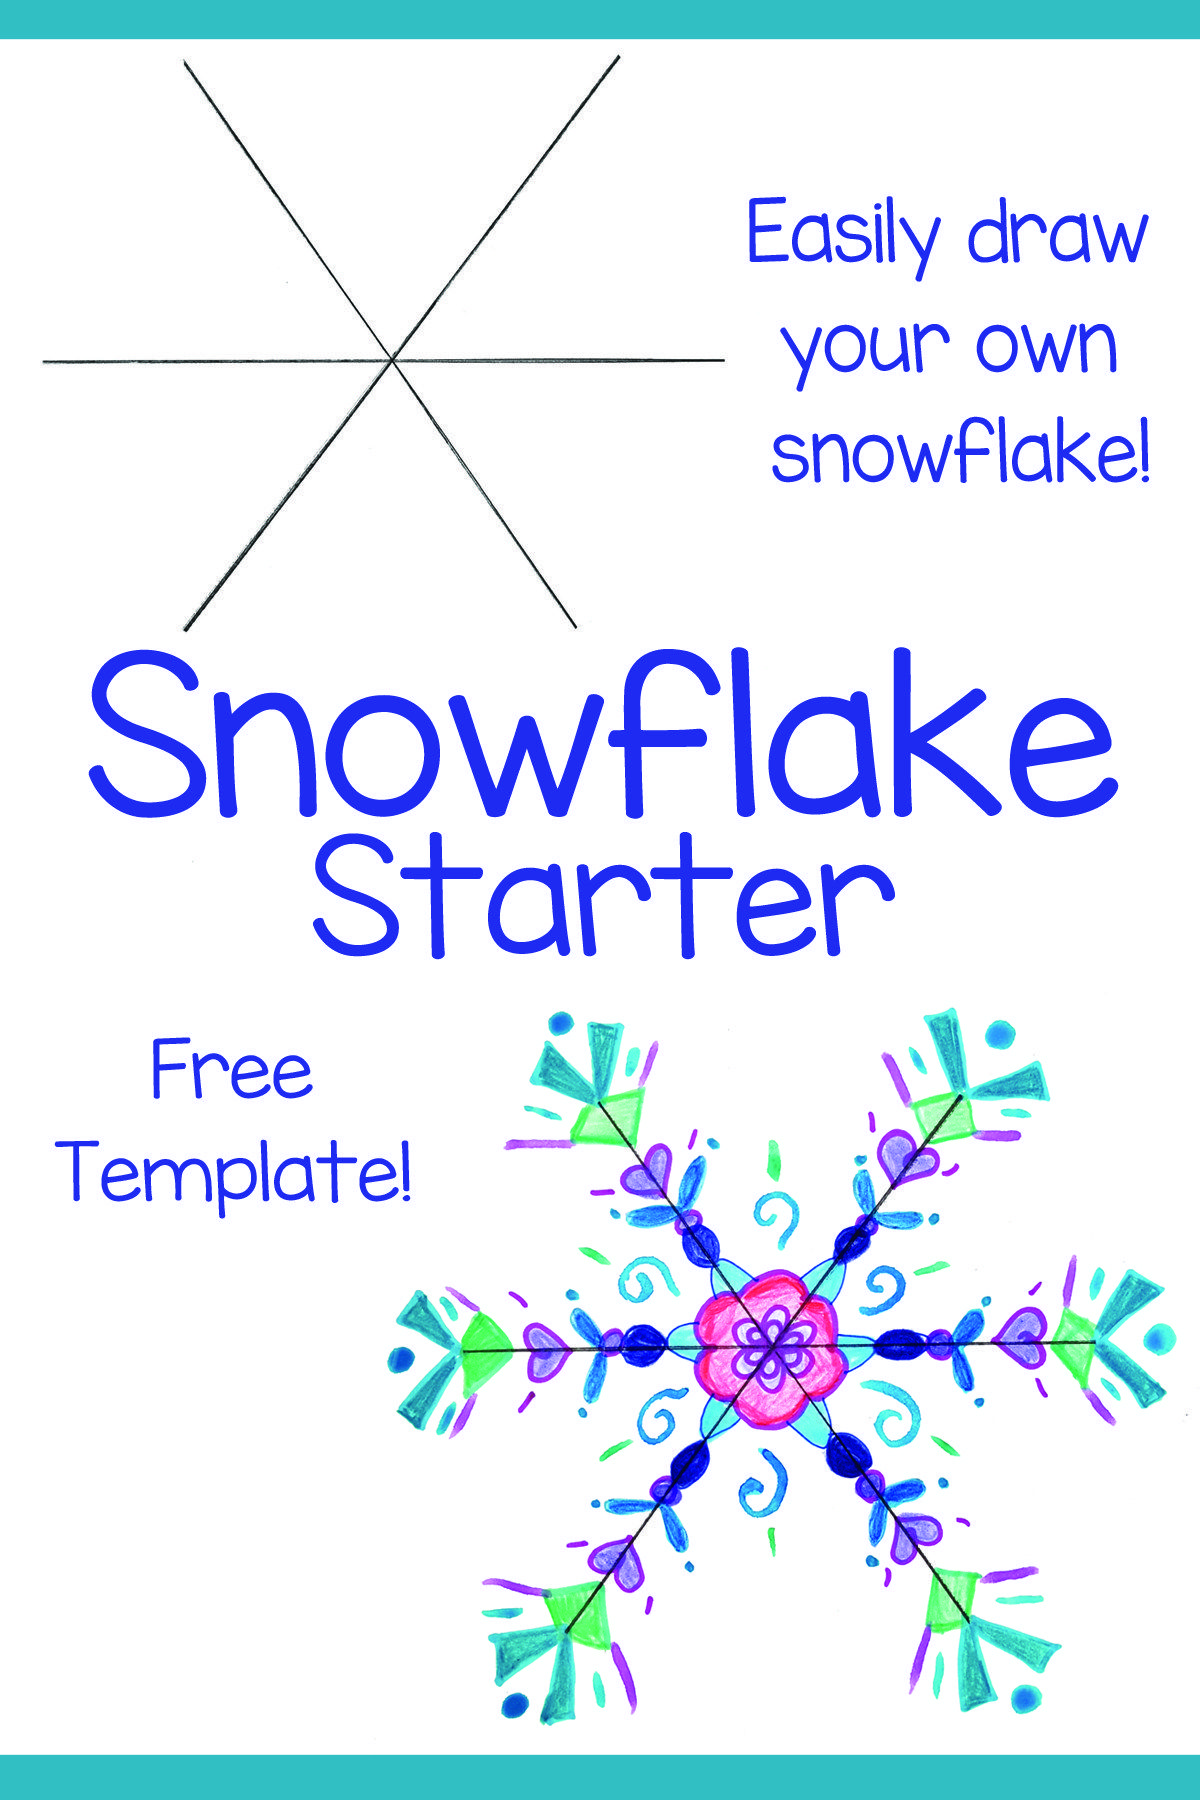 Snowflake Template: Easy to Draw! | Elementary art lesson ...